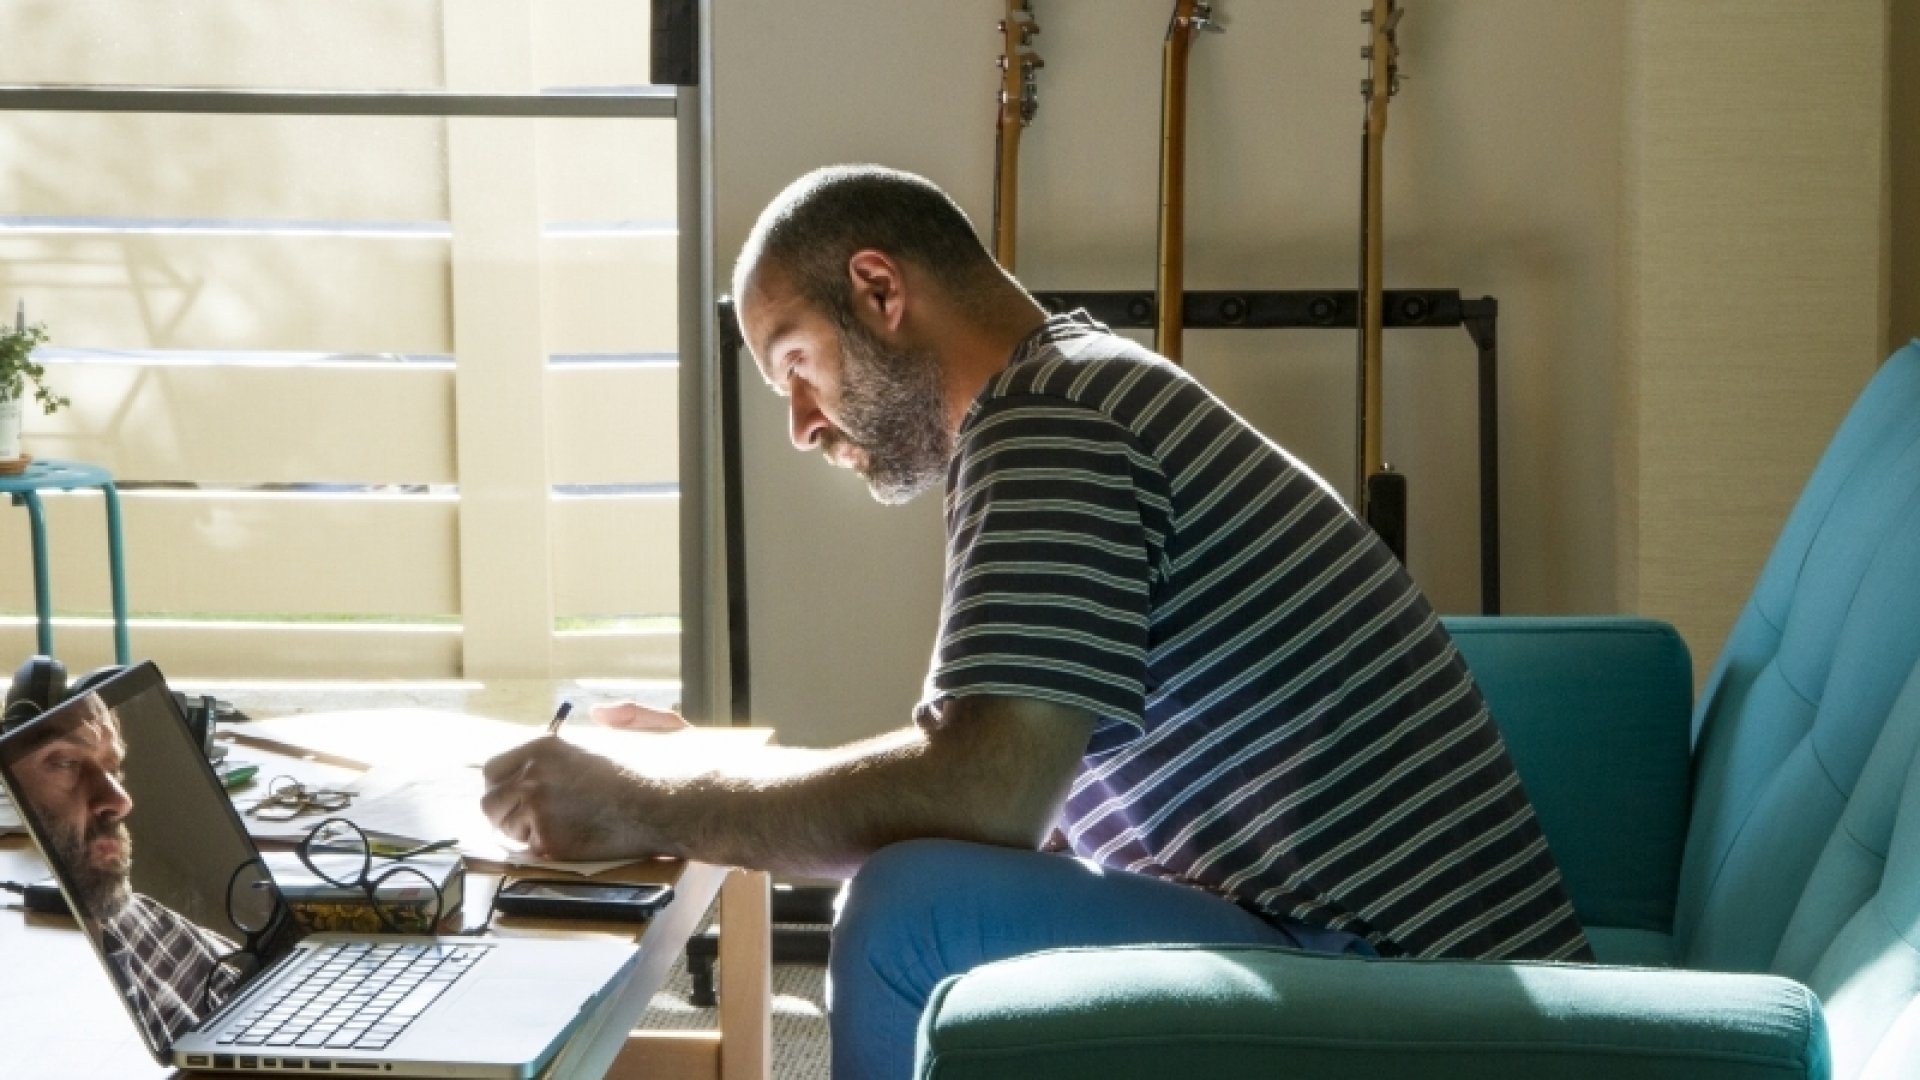 Want to Get More Done? Split Your Focus